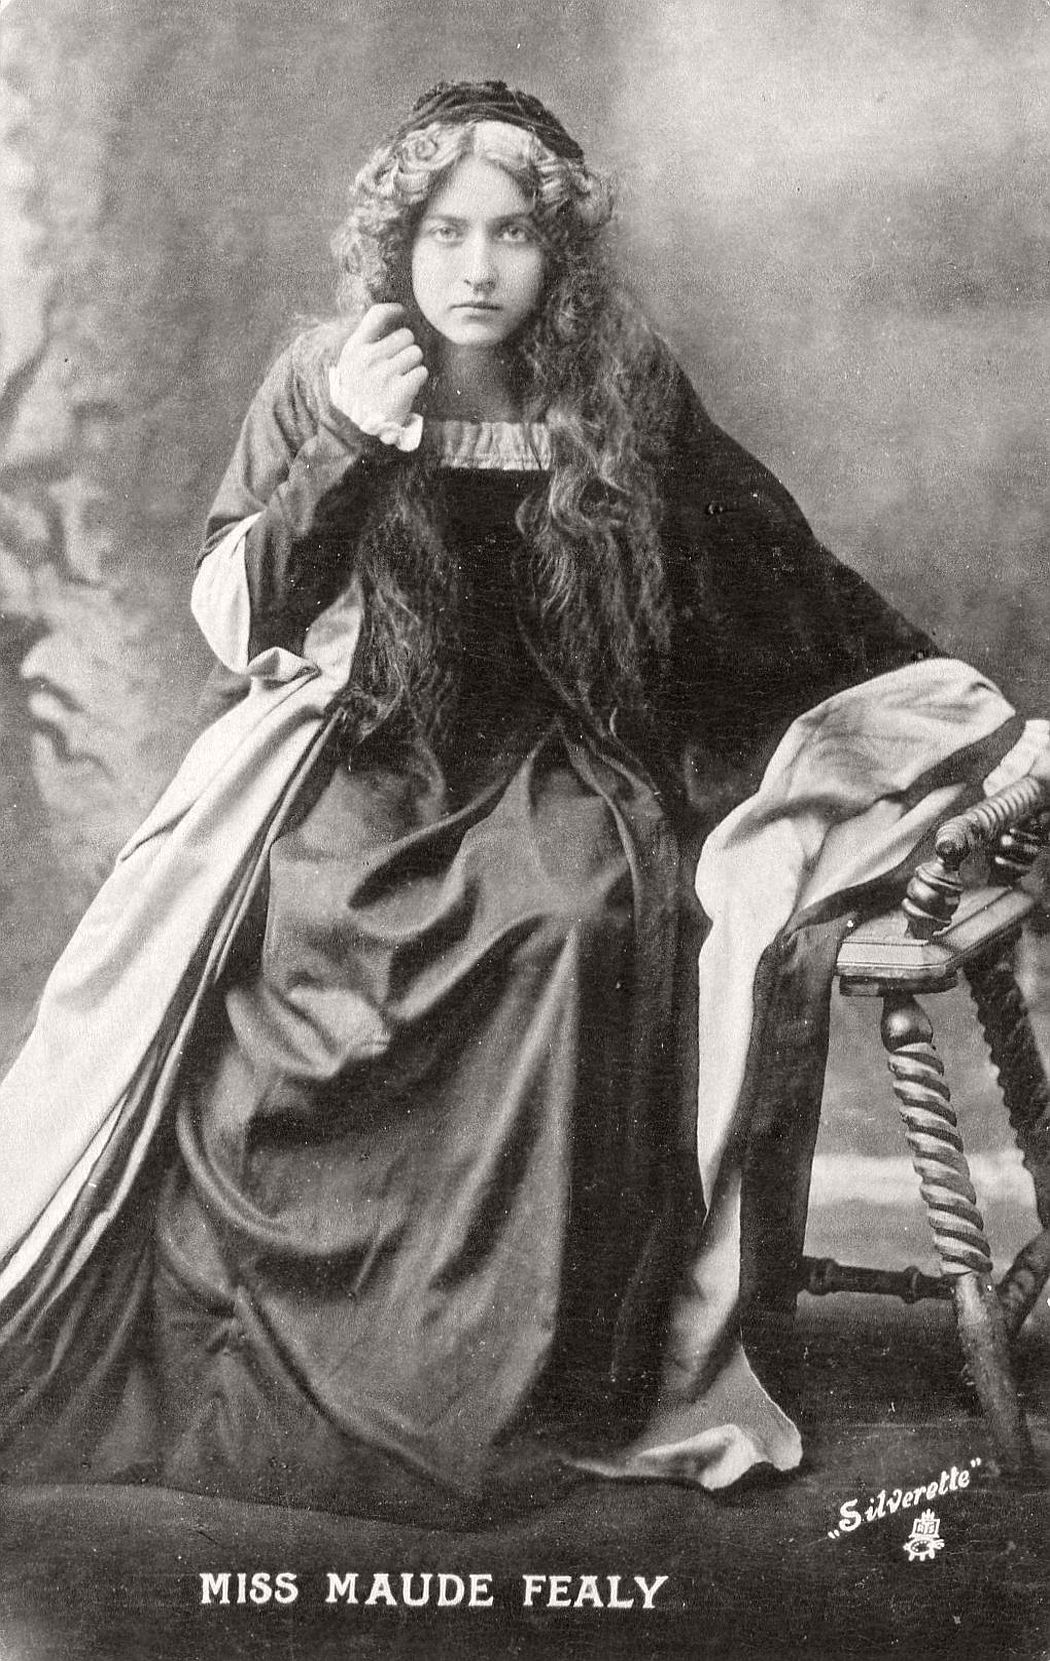 vintage-postcard-of-actress-miss-maude-fealy-1900s-early-xx-century-35